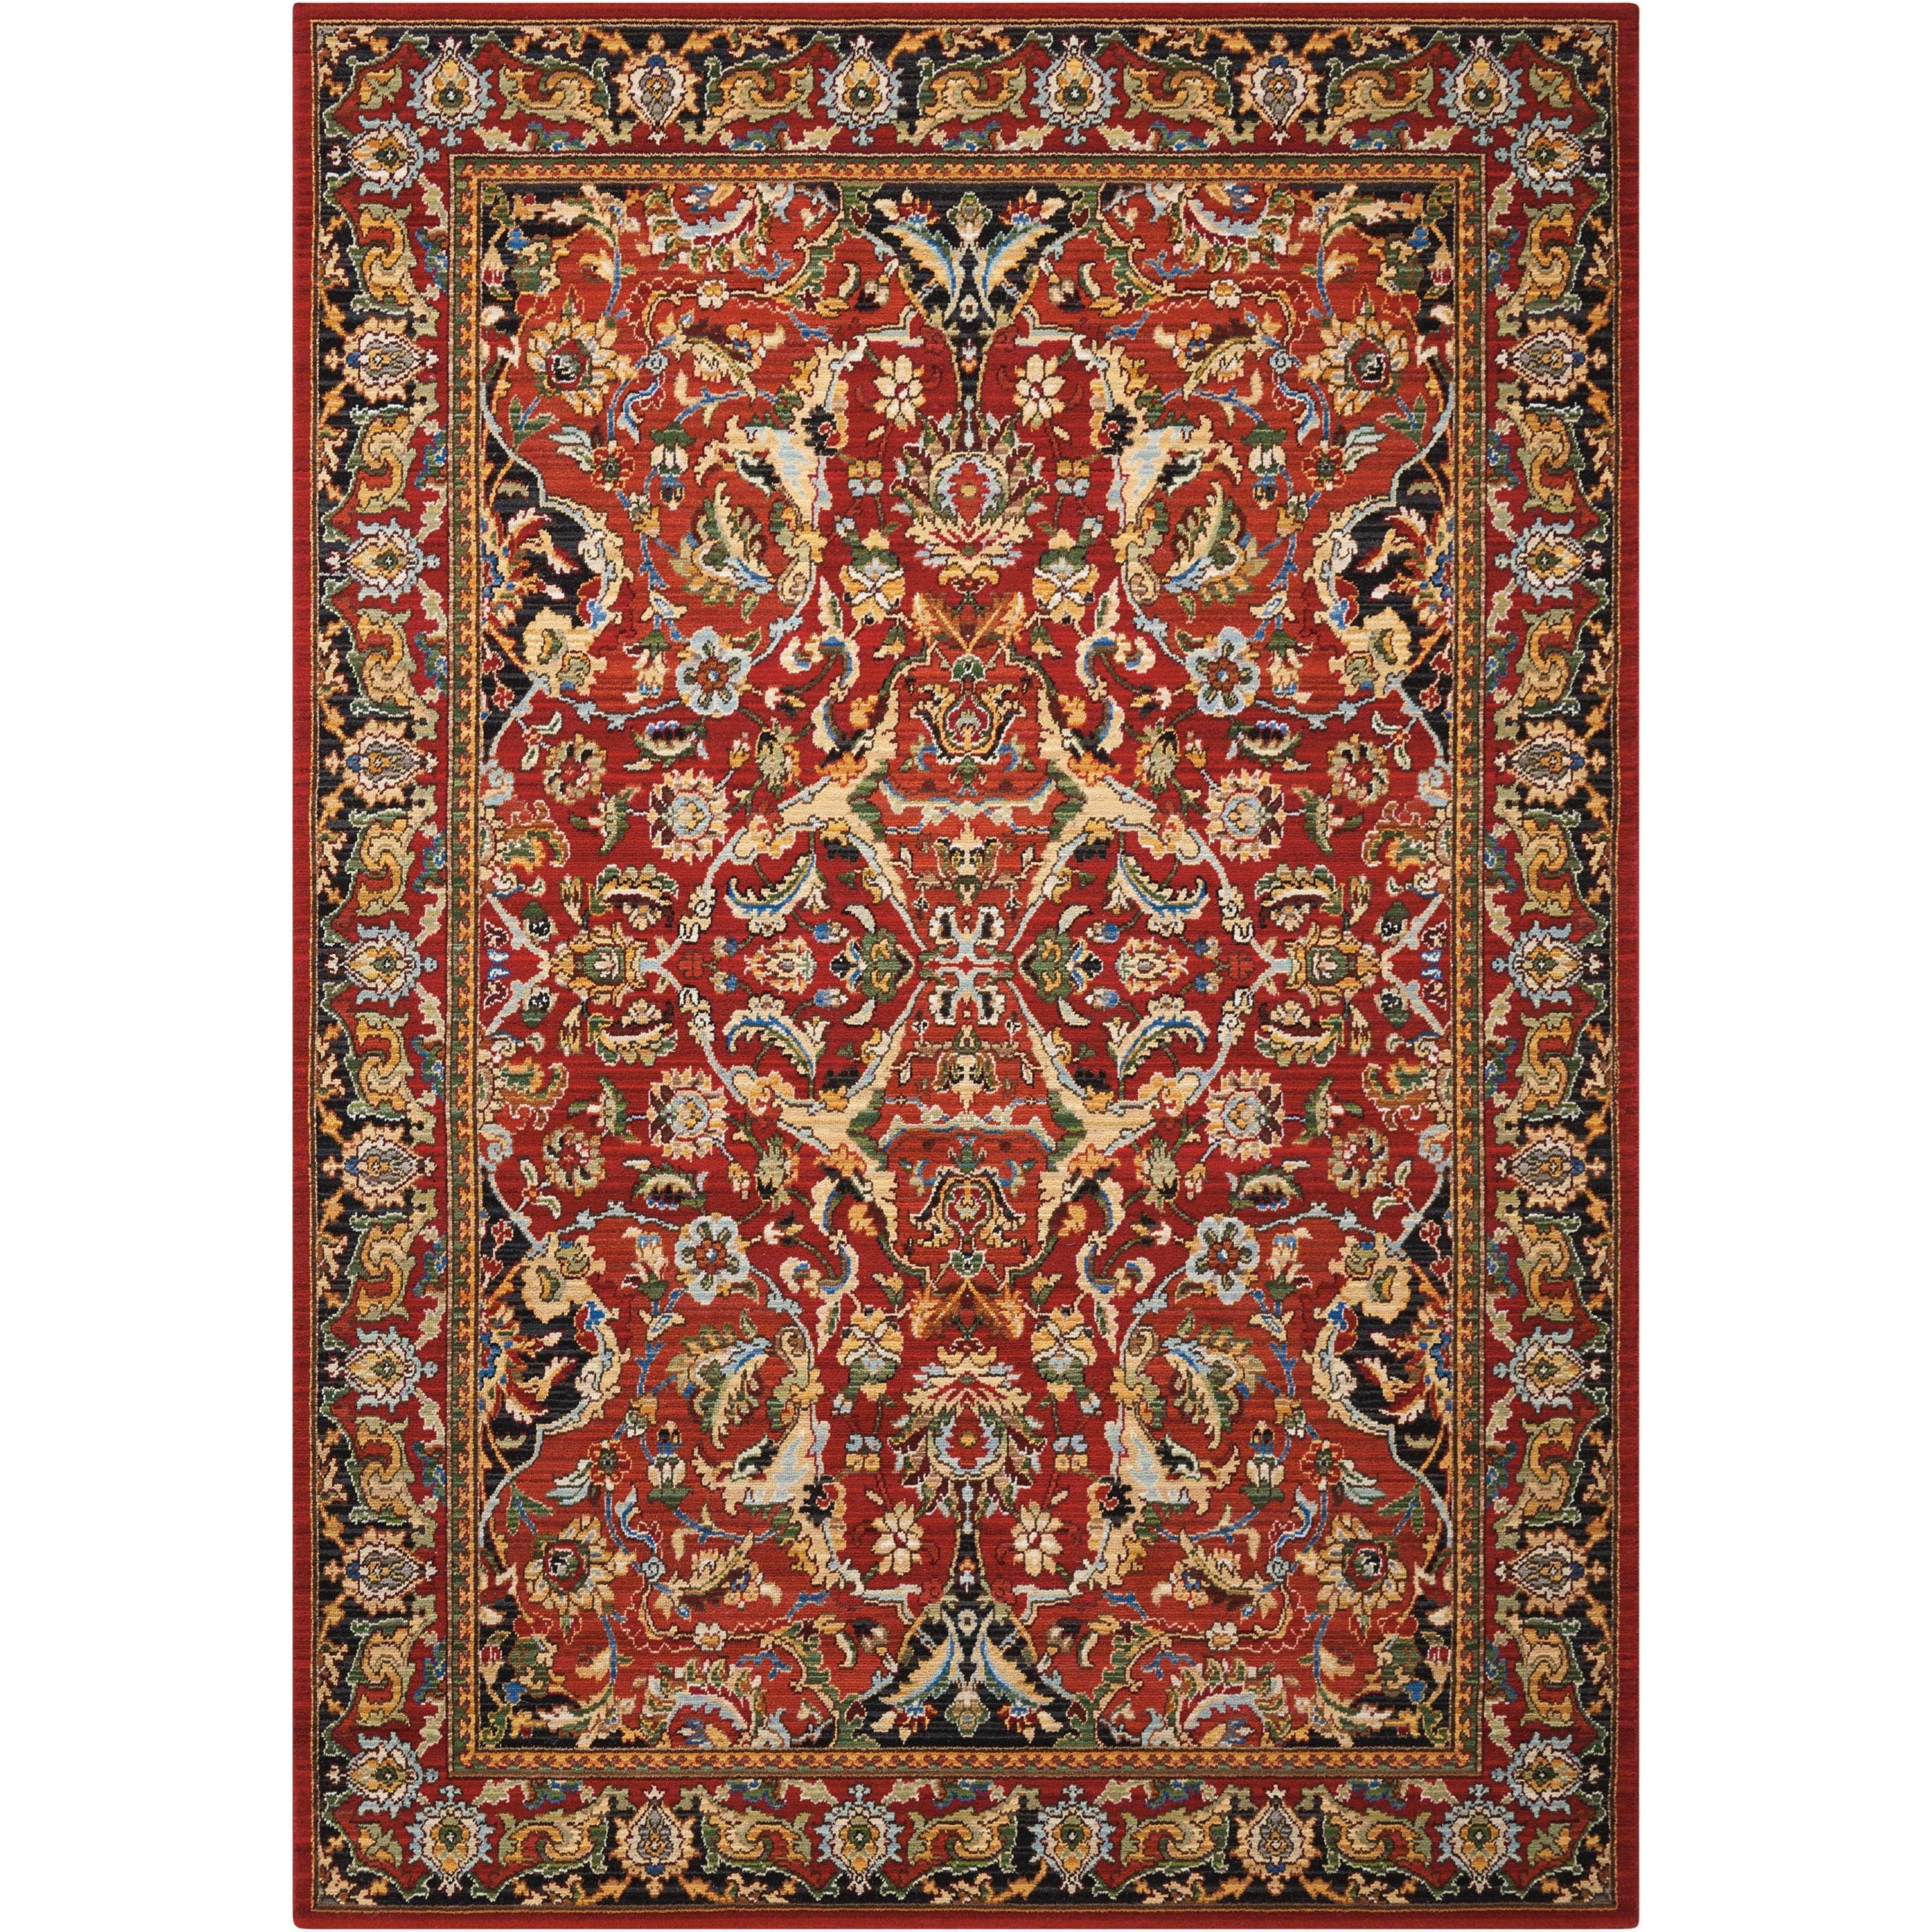 Timeless 12' x 15' Red Rectangle Rug by Nourison at Home Collections Furniture